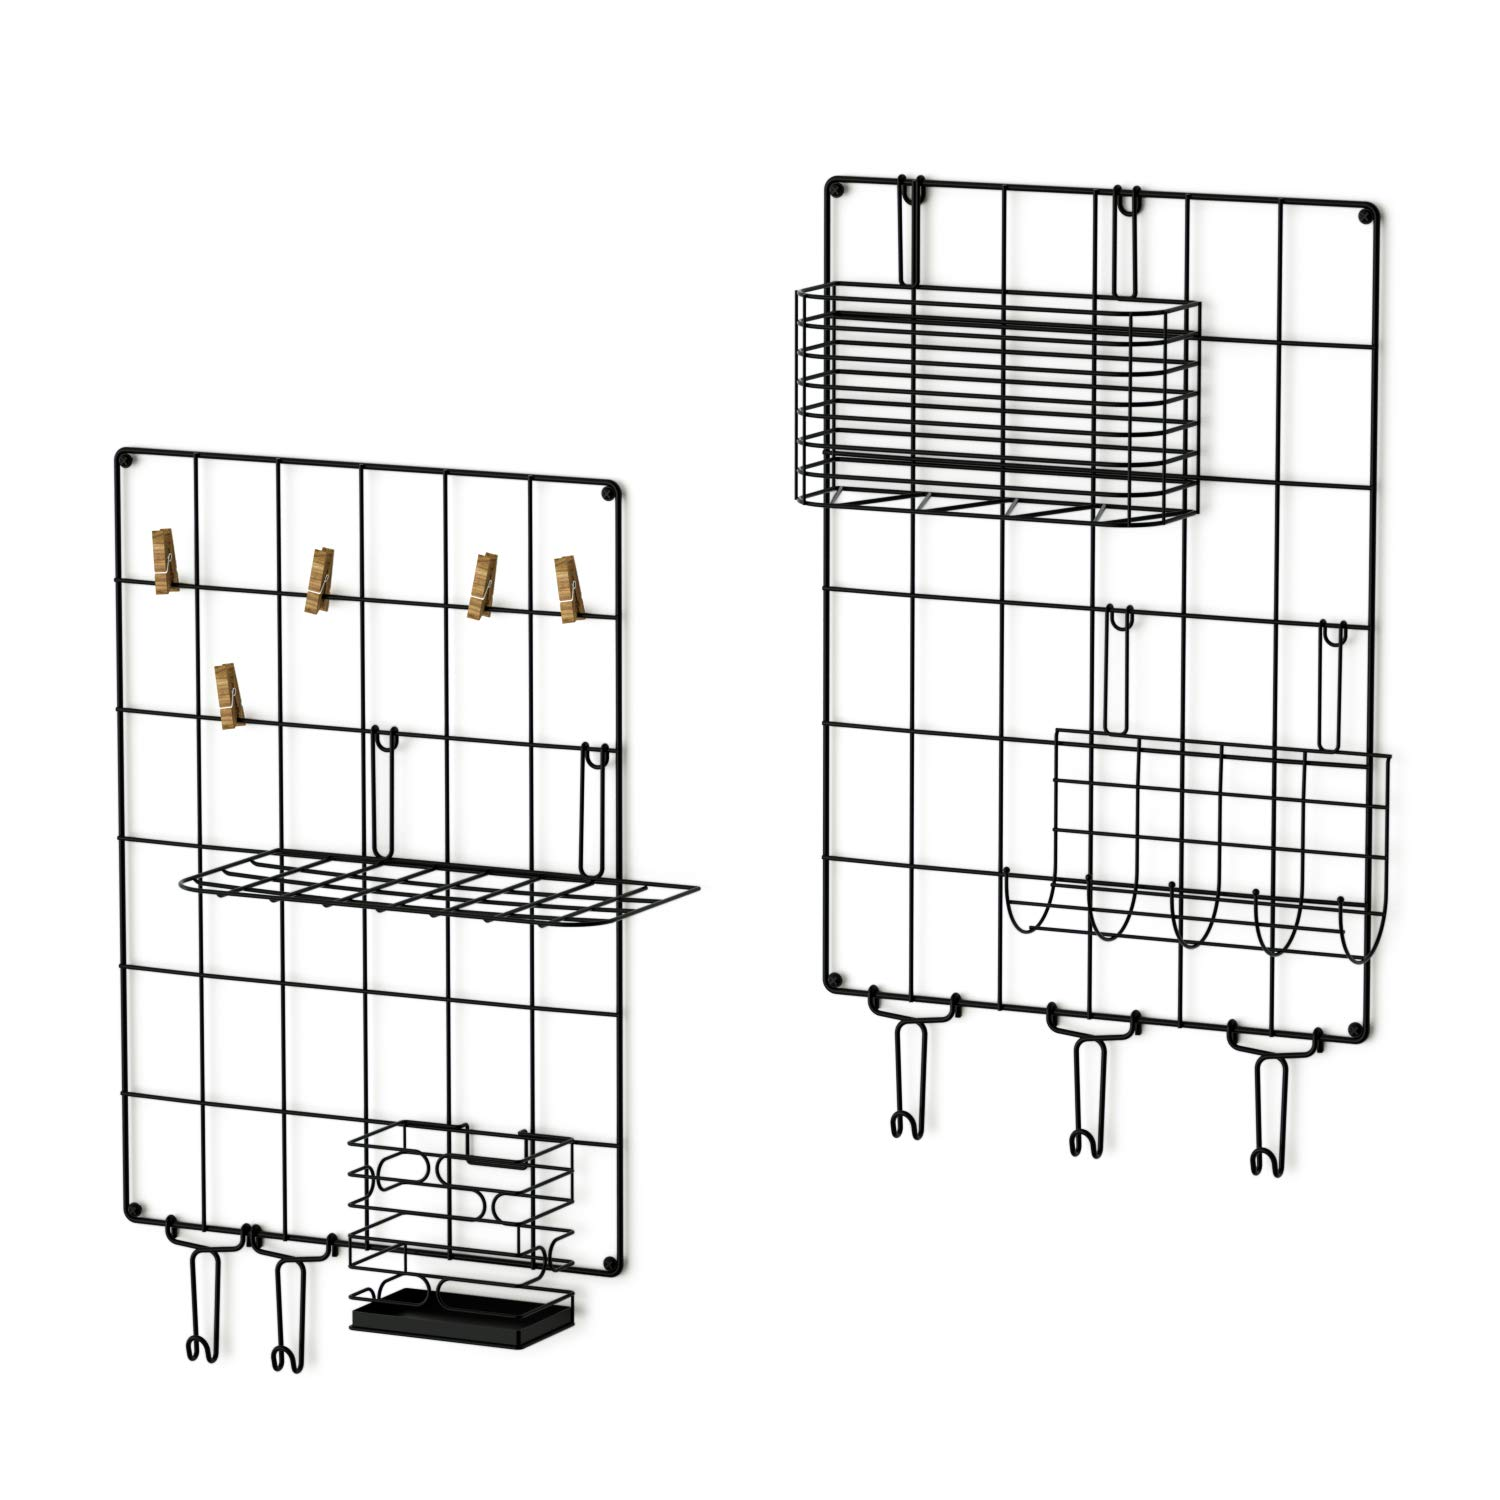 Love-KANKEI Wall Grid Panel Wire Grid Panel Set of 2 for Wall Decoration or Organization, 5 Hooks and 5 Clips 1 x Letter Frame, 1 x Hanging Basket, 1 x Pen Holder and 1 x Hanging net by Love-KANKEI